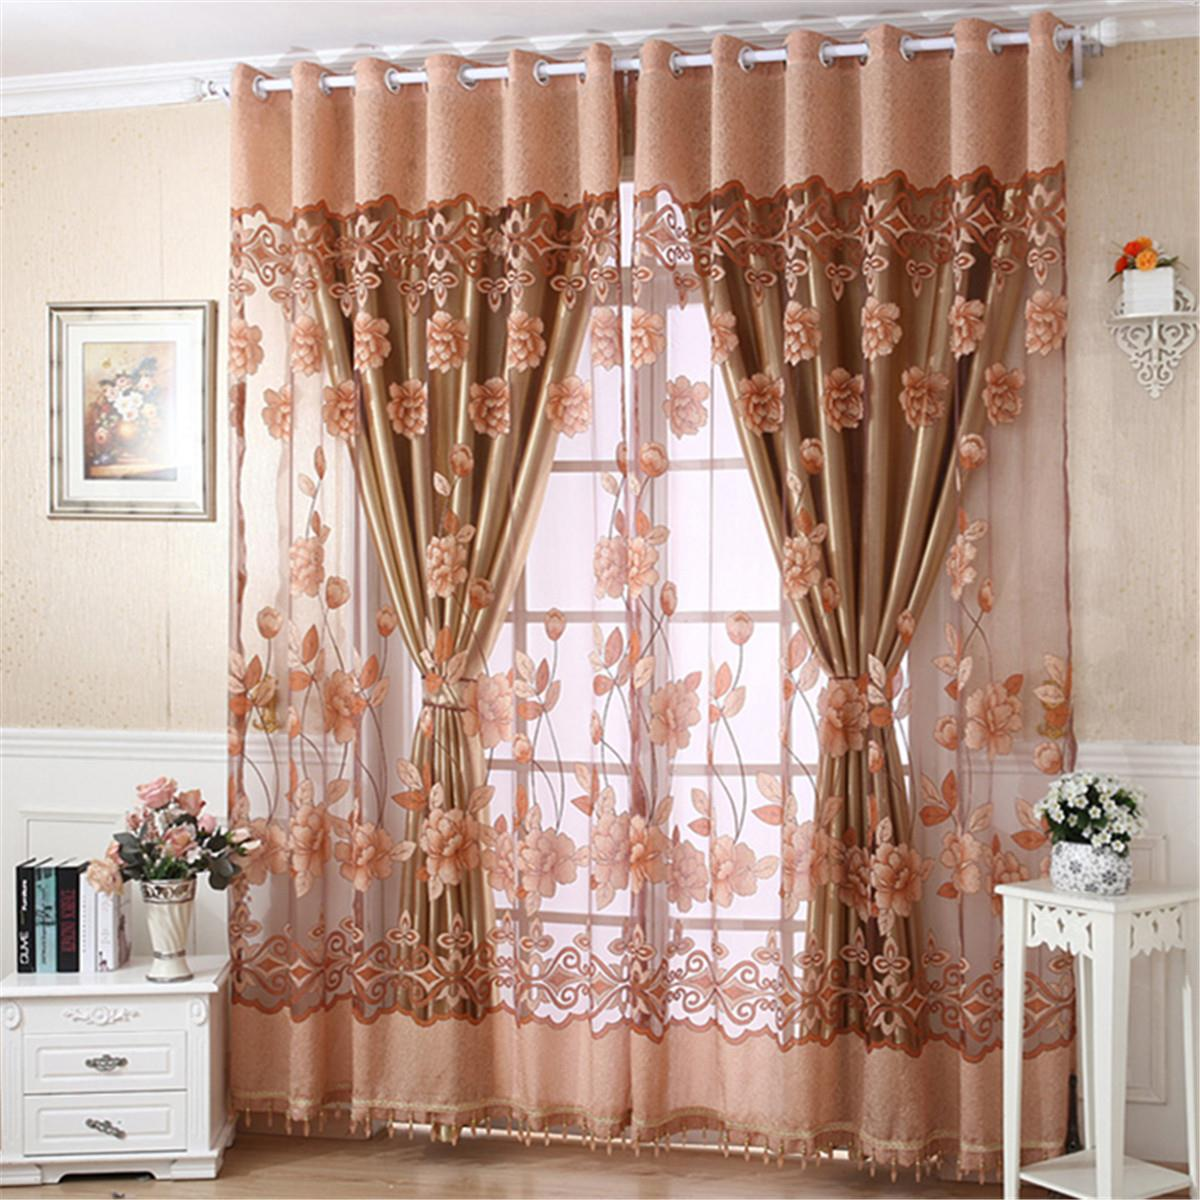 Curtain Valances For Bedroom Online Get Cheap Window Curtains Valances Aliexpresscom